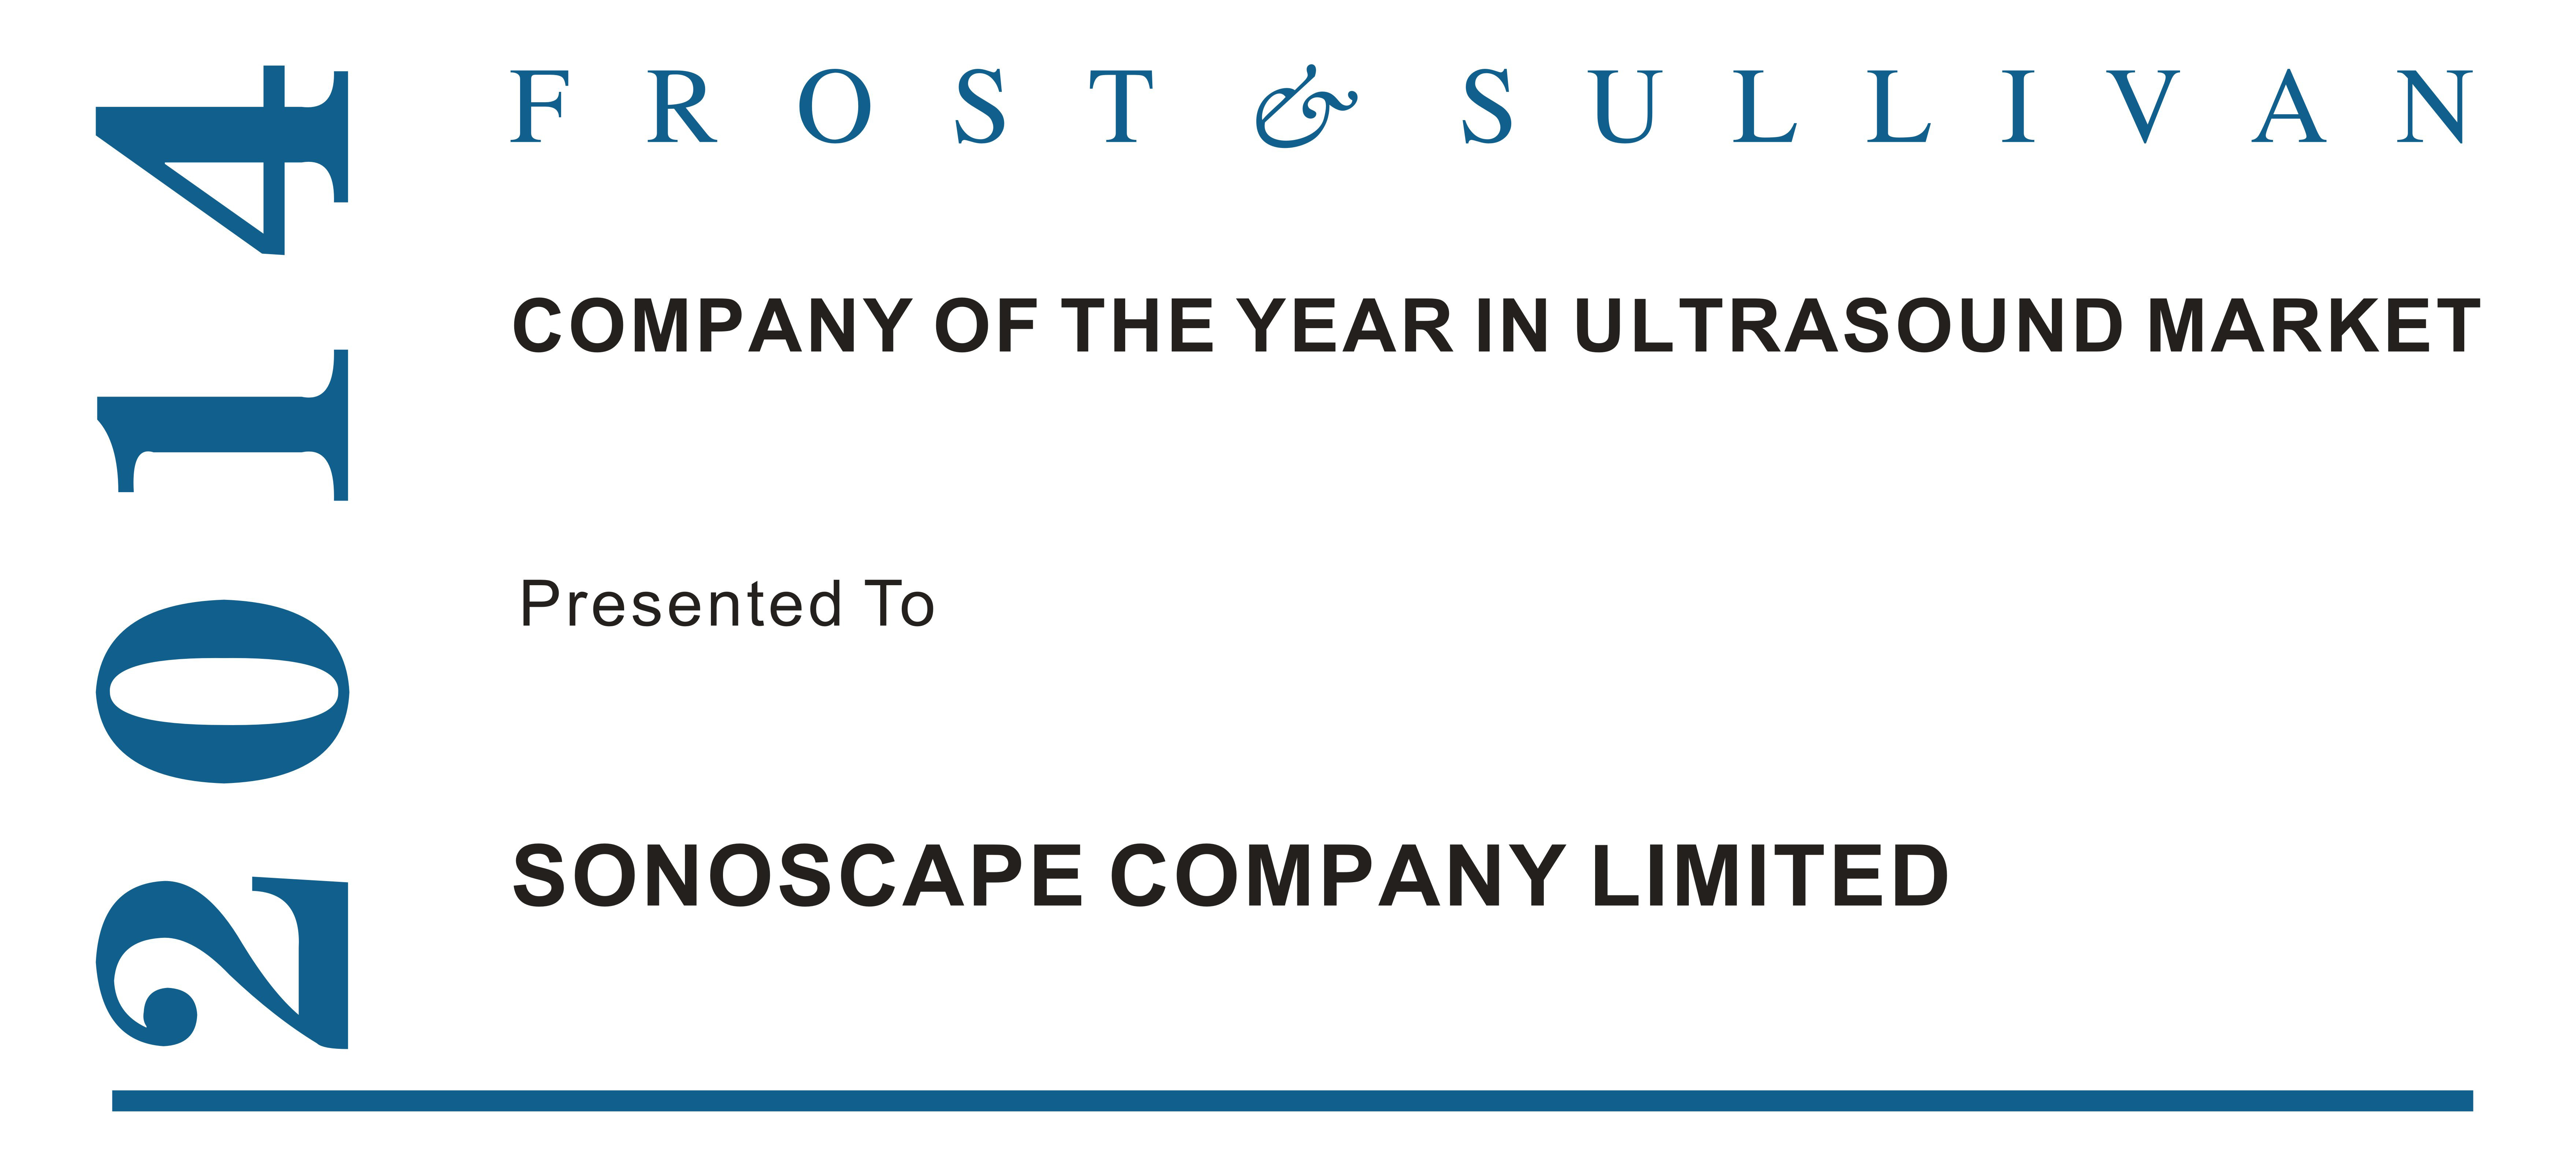 "Received ""Company Of The Year In Ultrasound Market 2014"" from FROST & SULLIVAN"